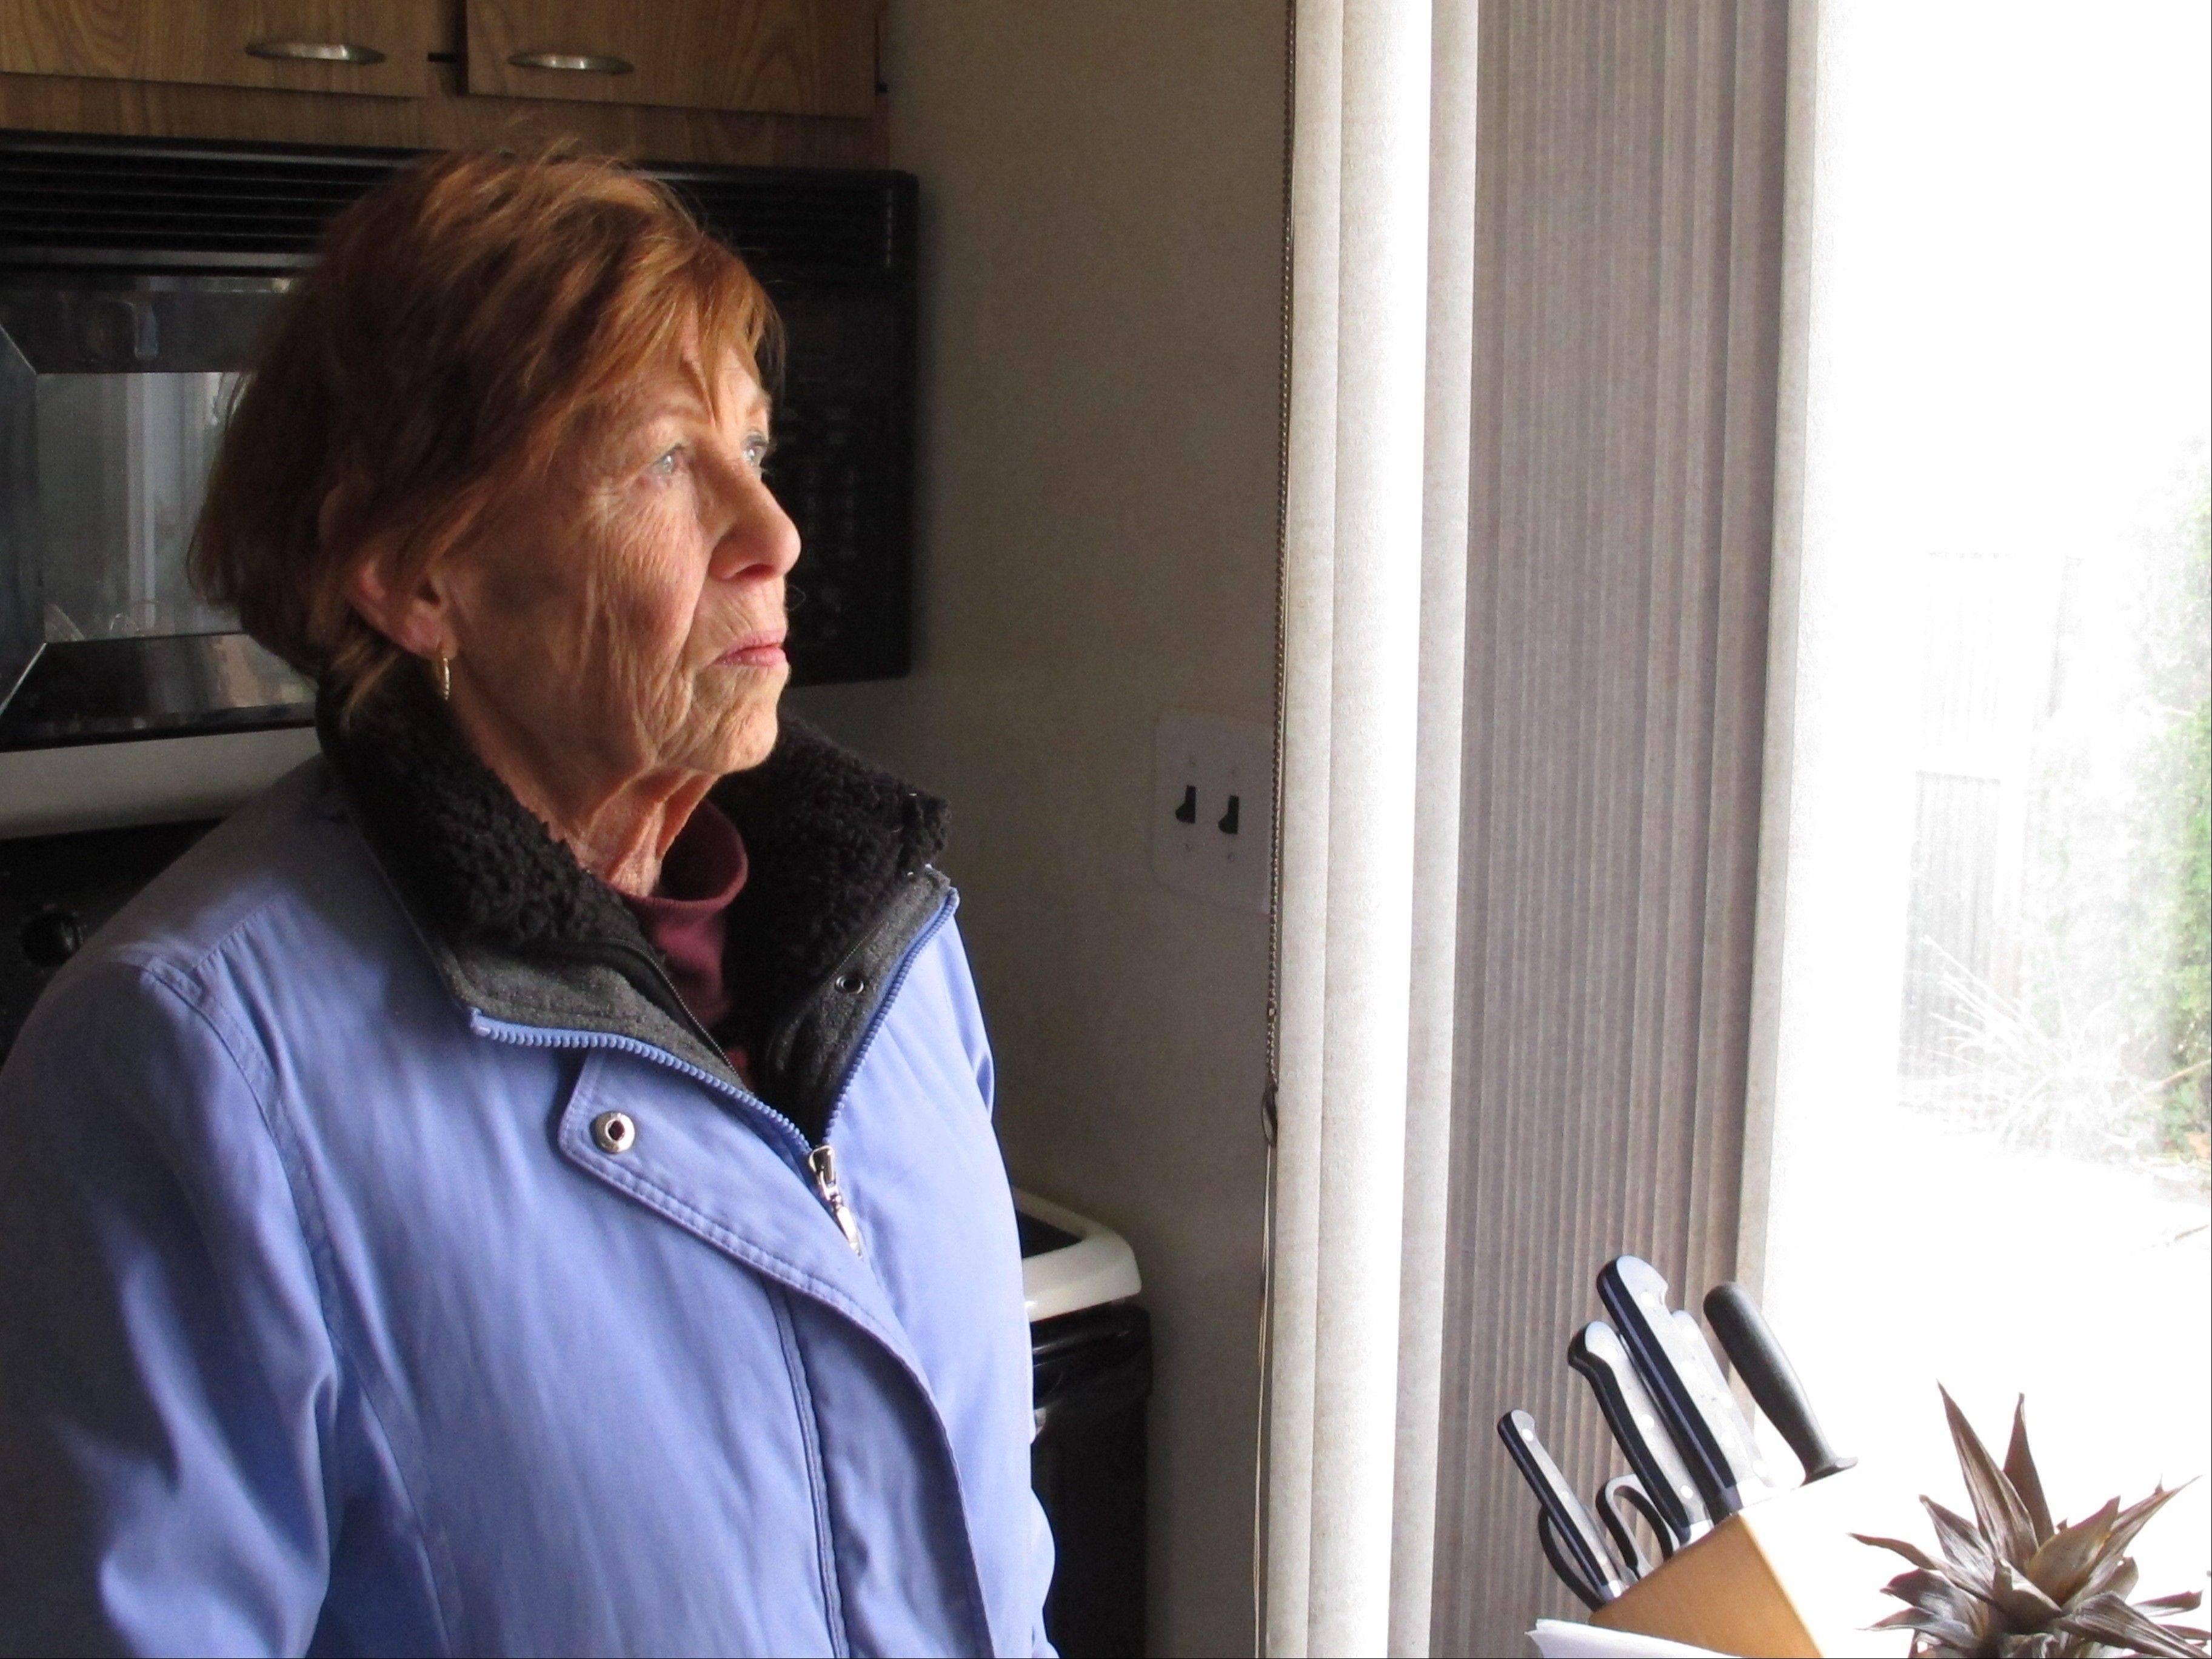 Eileen James wears layered clothing and stays close to the windows in the daytime to try and stay warm in Farmingdale, N.Y. The 78-year-old retired secretary is one of thousands of elderly people coping with no electricity or heat in the wake of Superstorm Sandy.